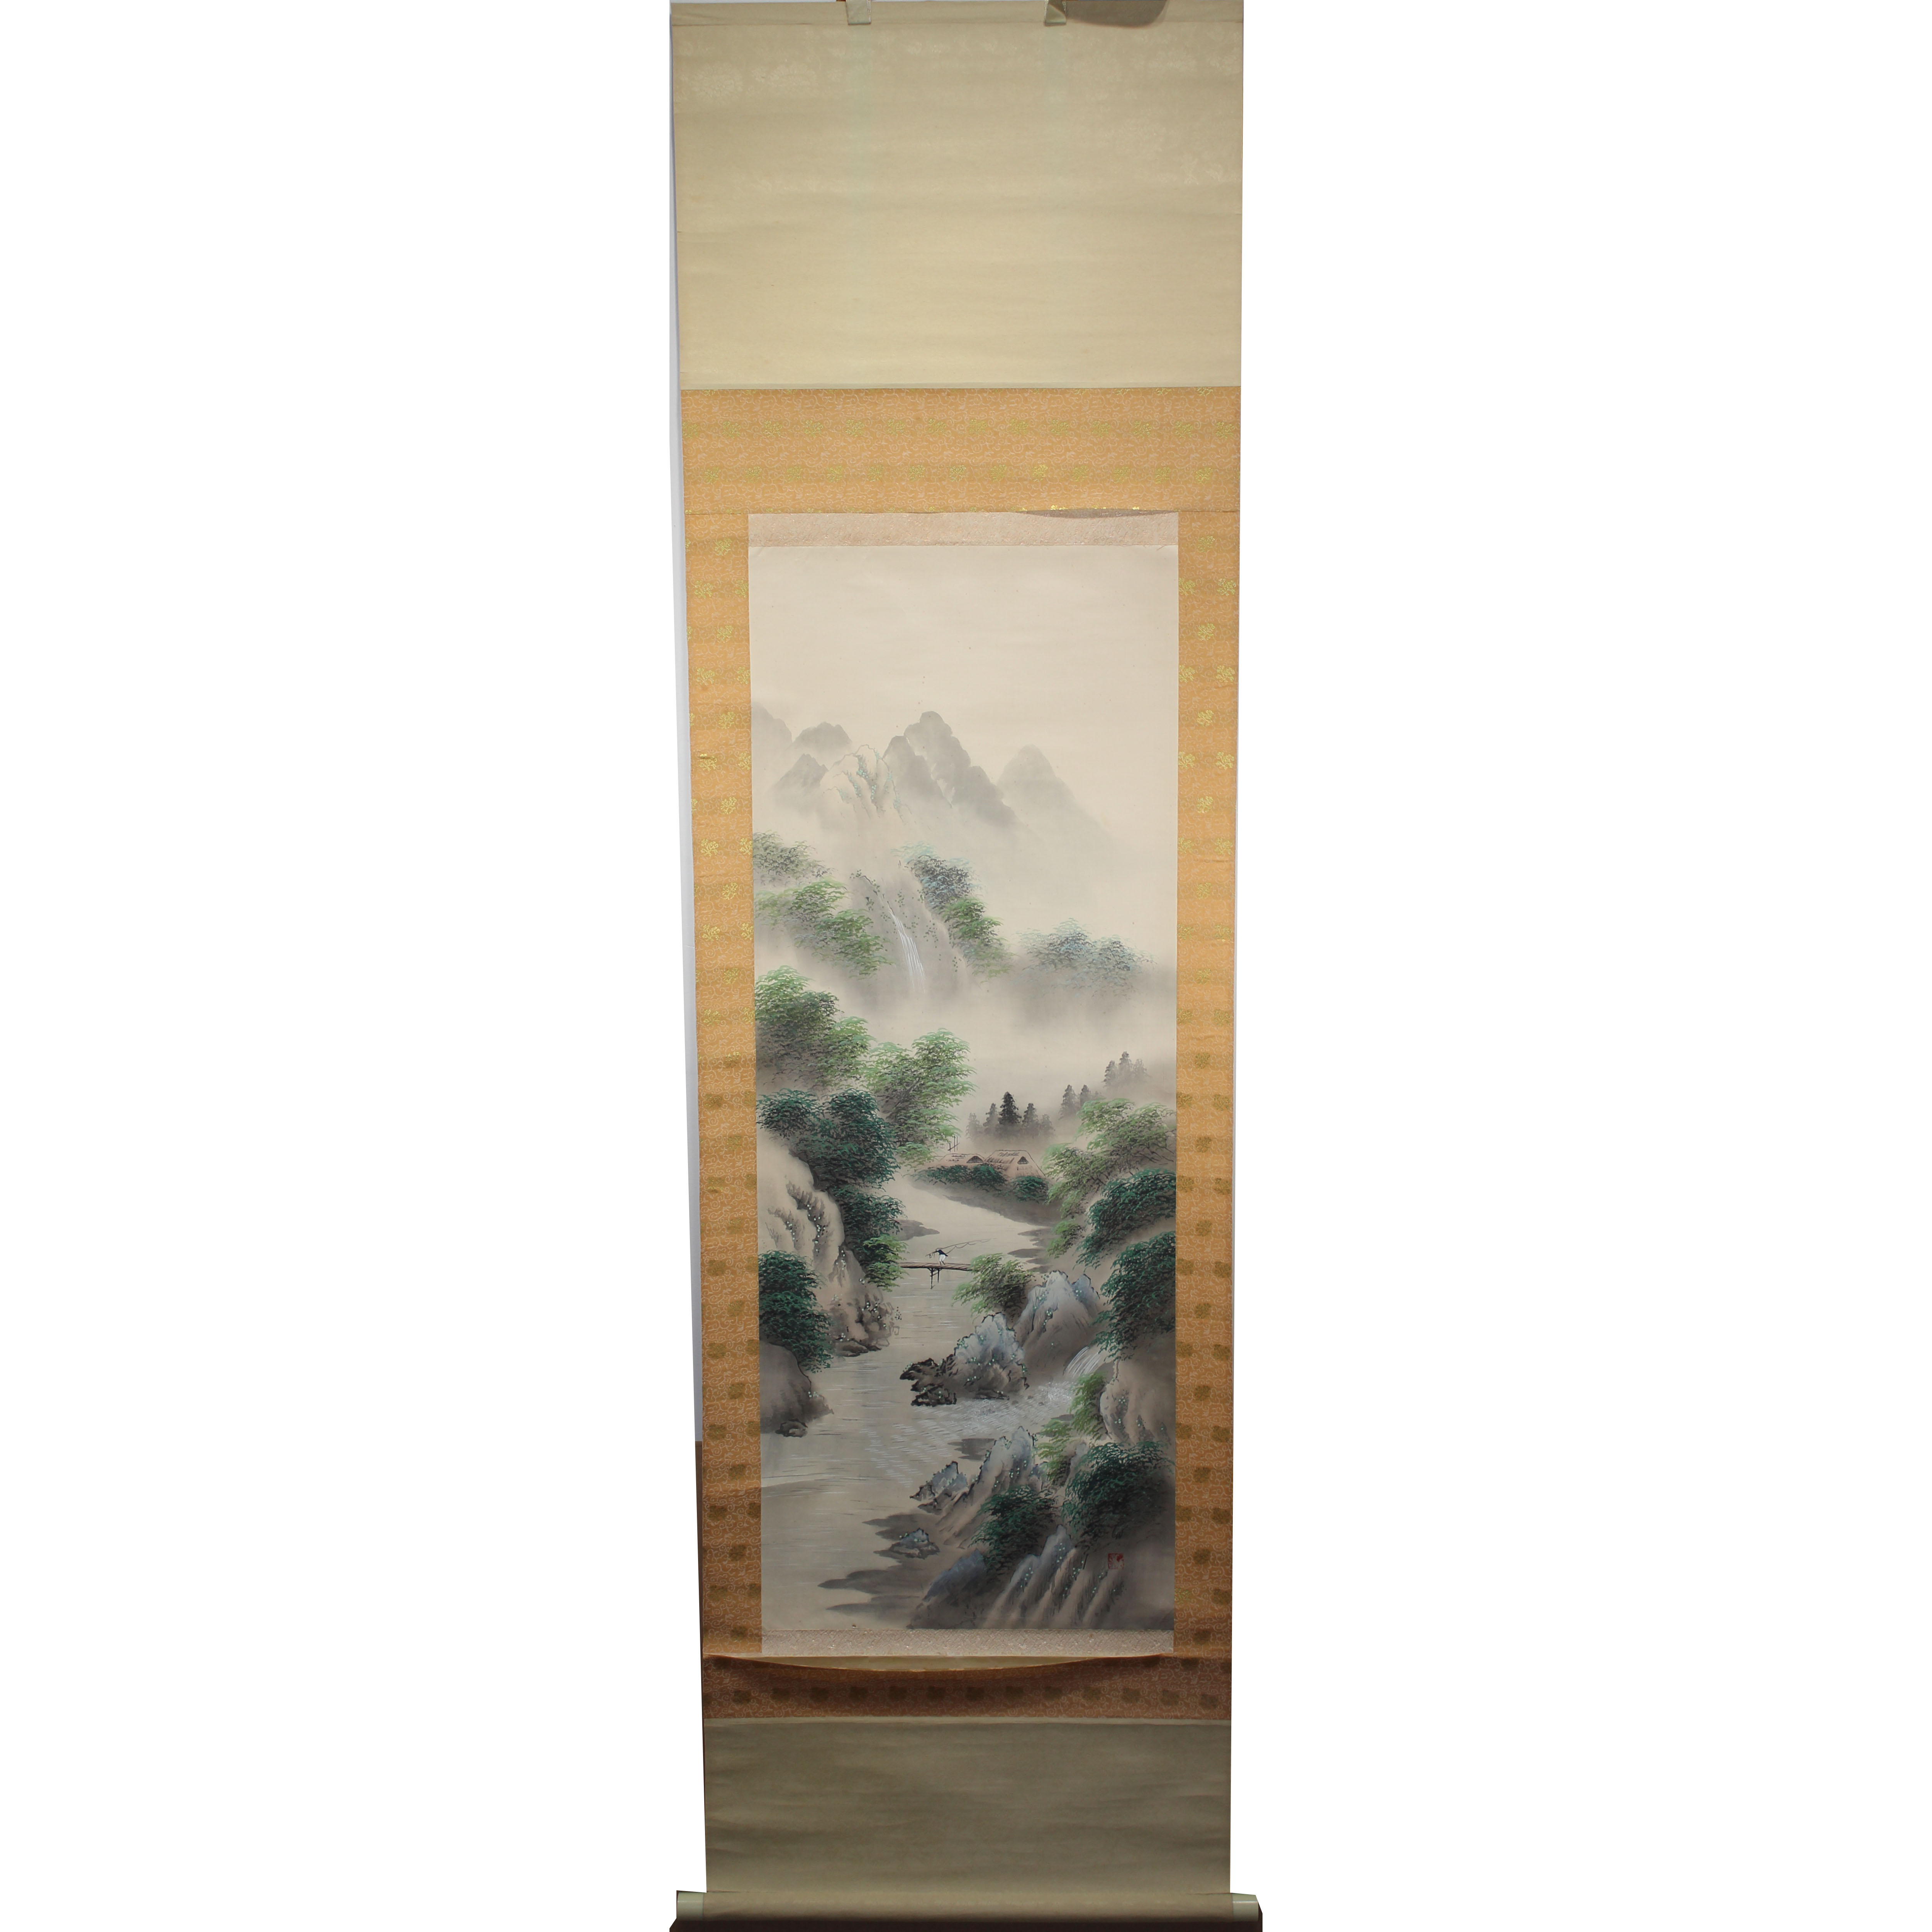 Lot 272 - Signed, Chinese Scroll Painting